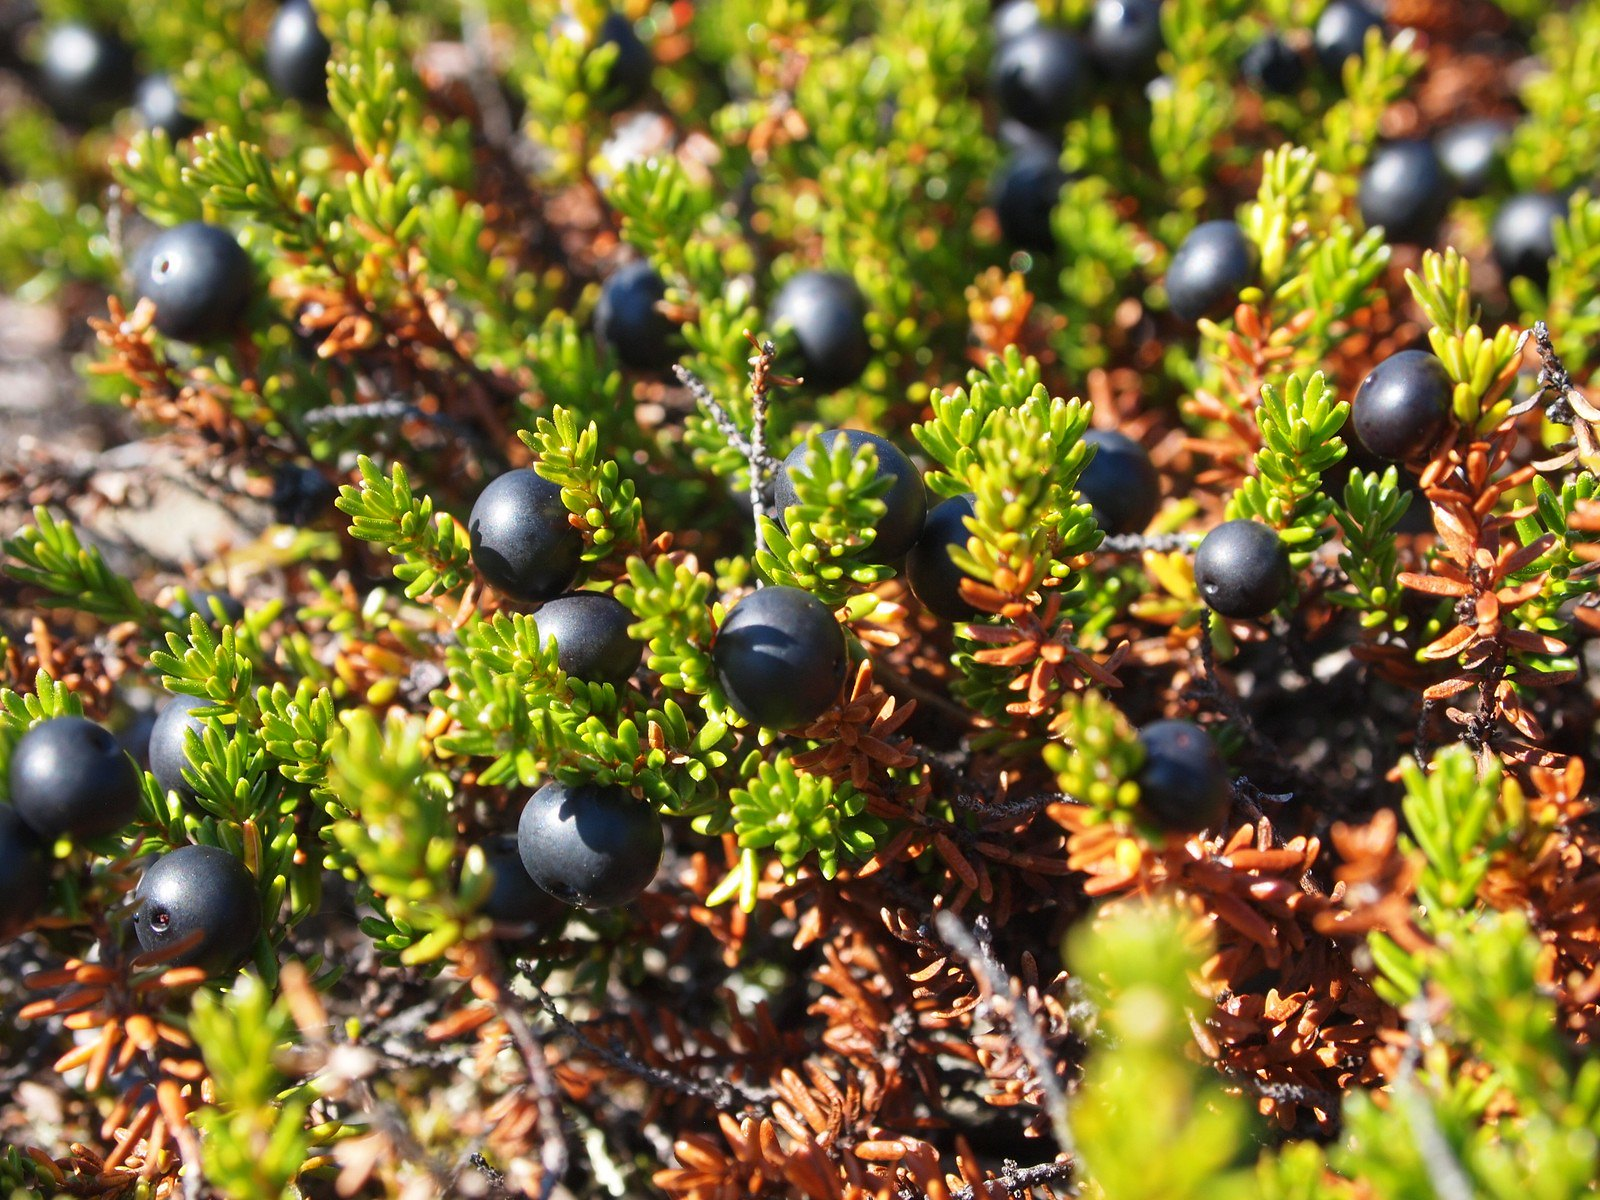 The Crowberry